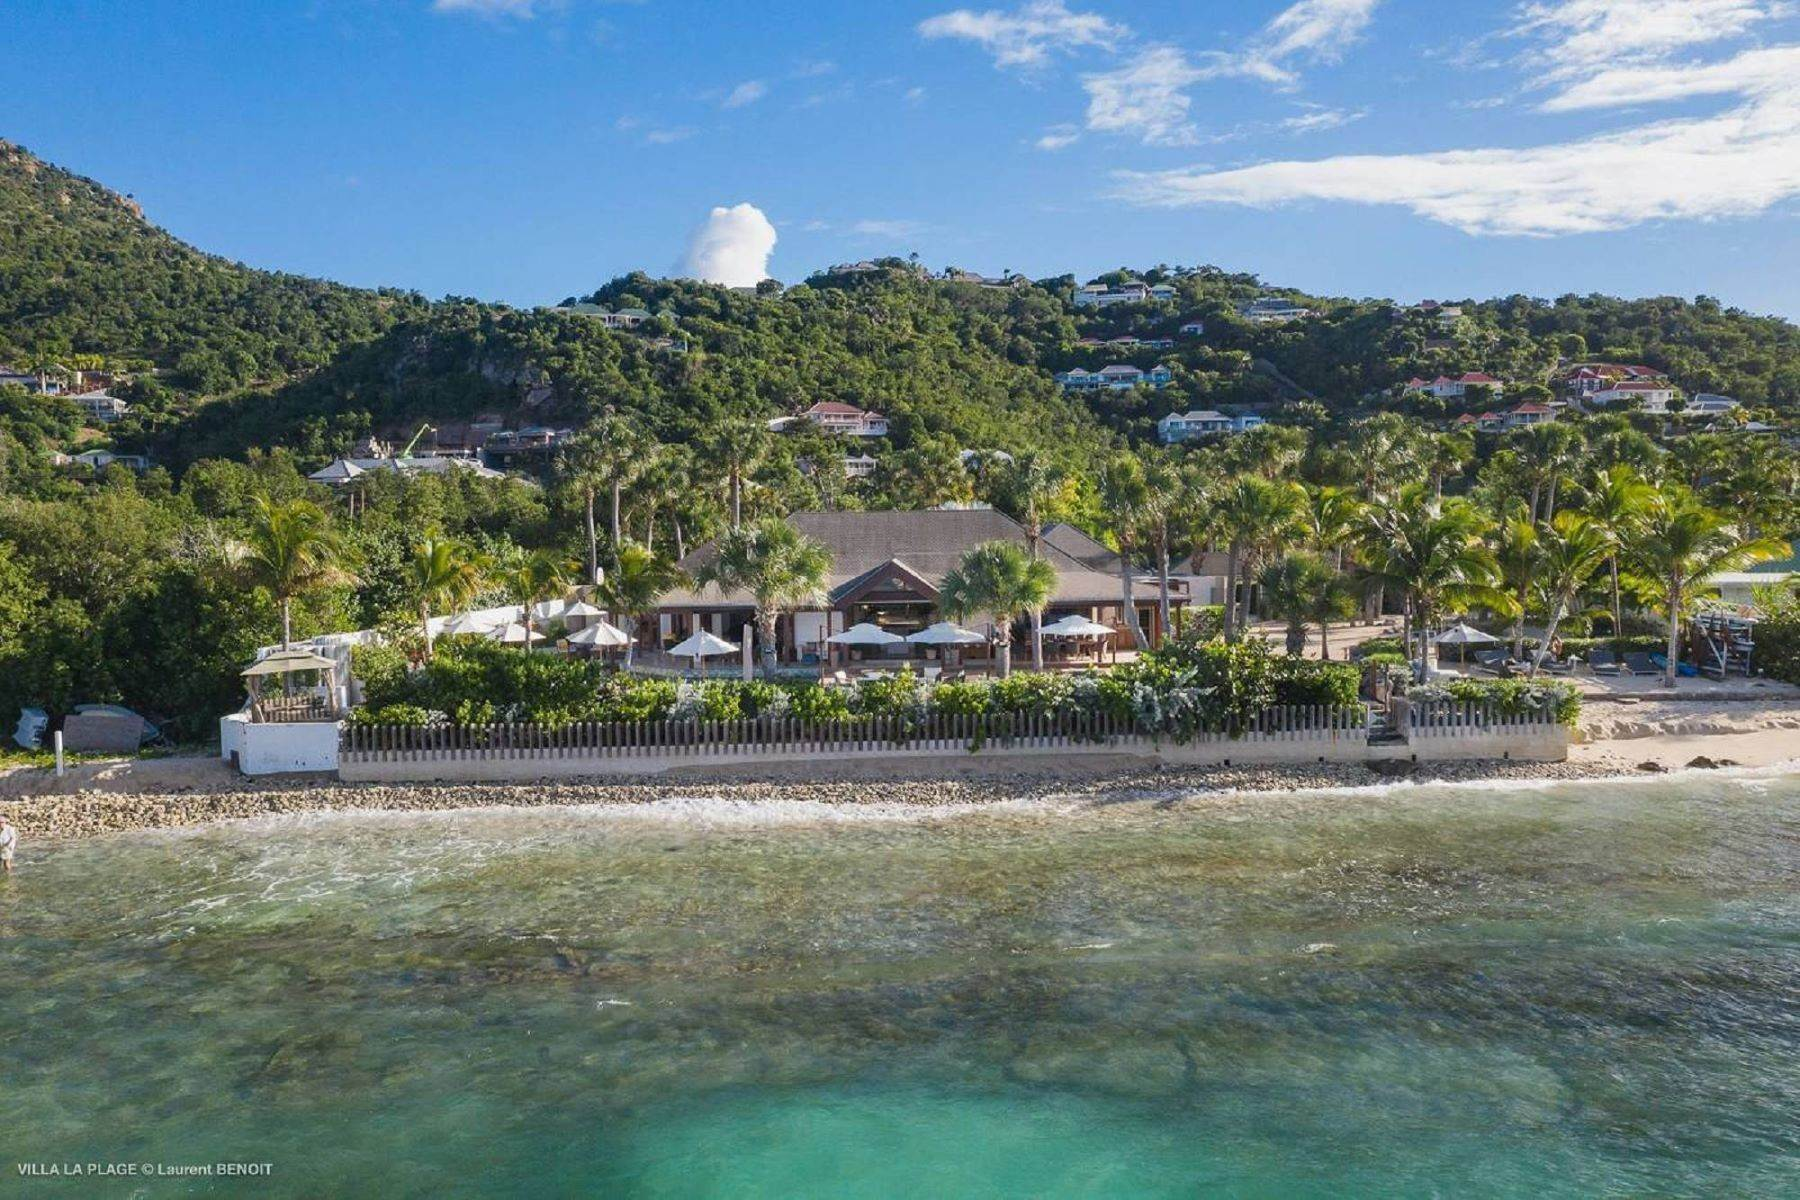 Single Family Homes for Sale at Villa La Plage Other St. Barthelemy, St. Barthelemy